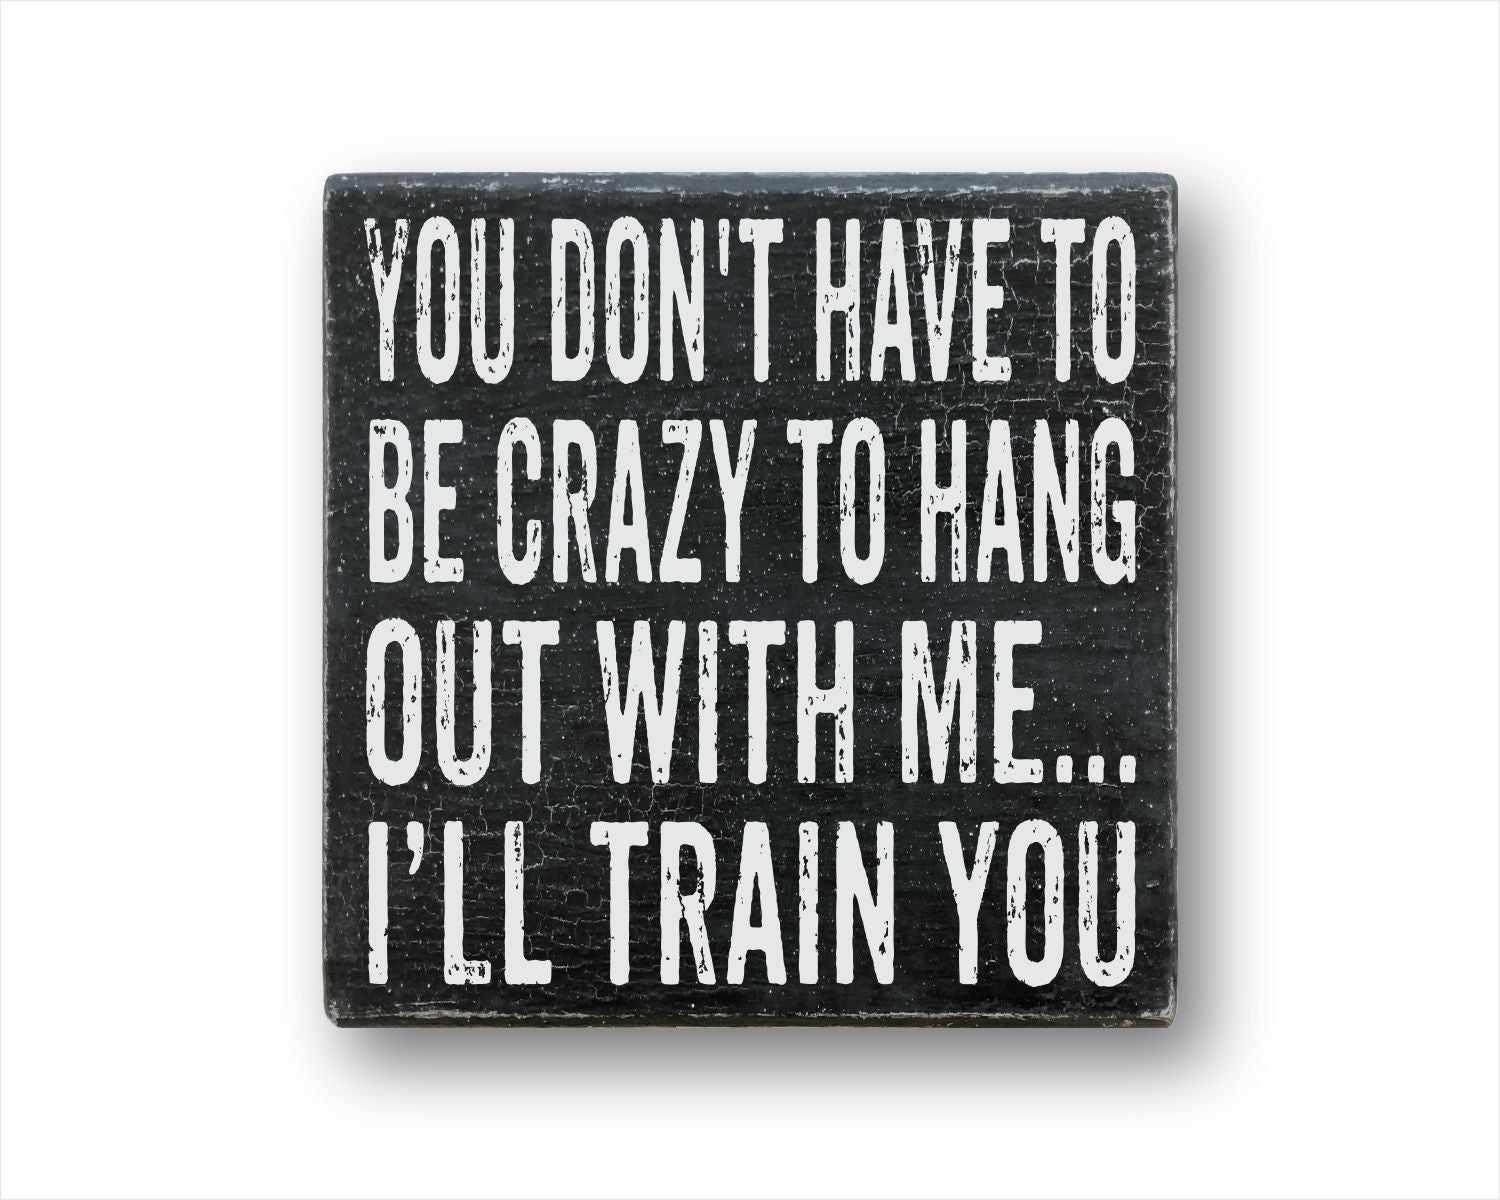 You Don't Have To Be Crazy To Hang Out With Me I'll Train You: Rustic Square Wood Sign